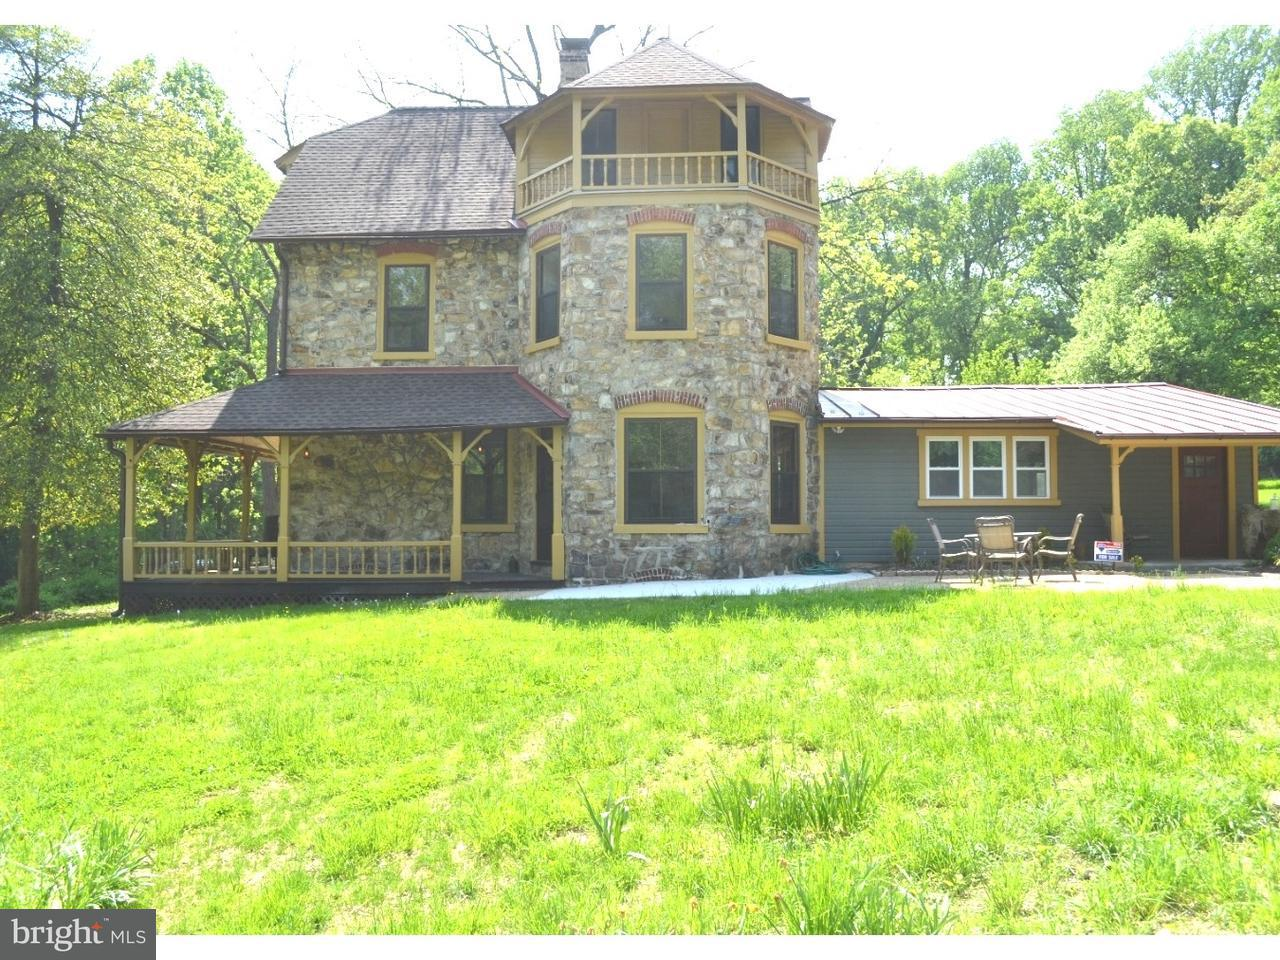 Single Family Home for Sale at 125 TOWNSHIP LINE Road Exton, Pennsylvania 19341 United States